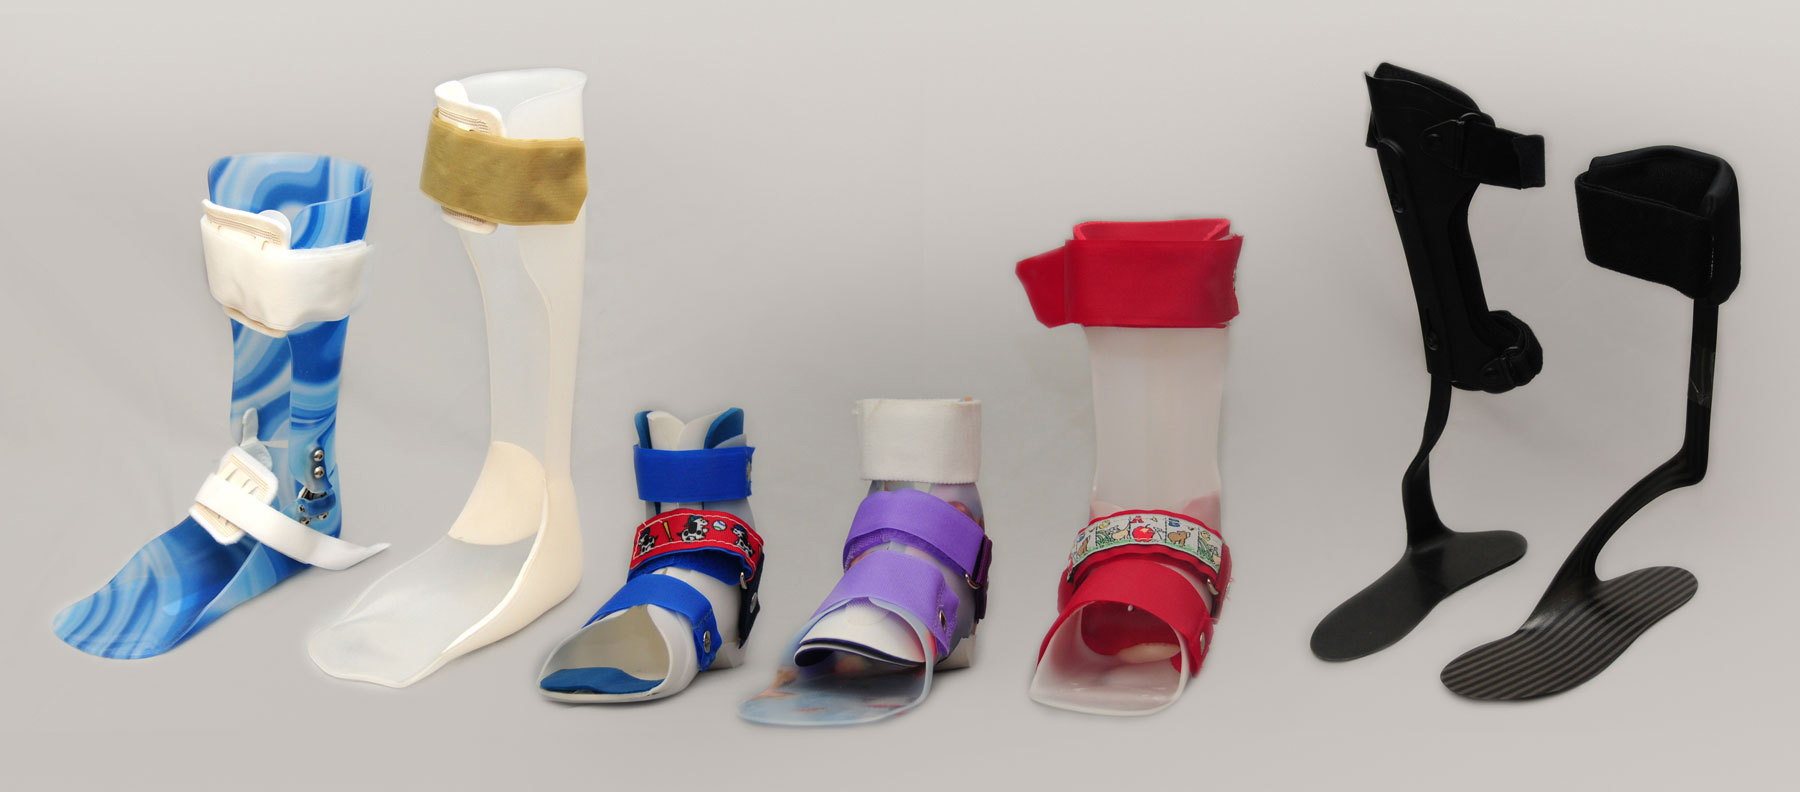 How Customized Orthotics Help You Manage Conditions and Expedite the Healing Process